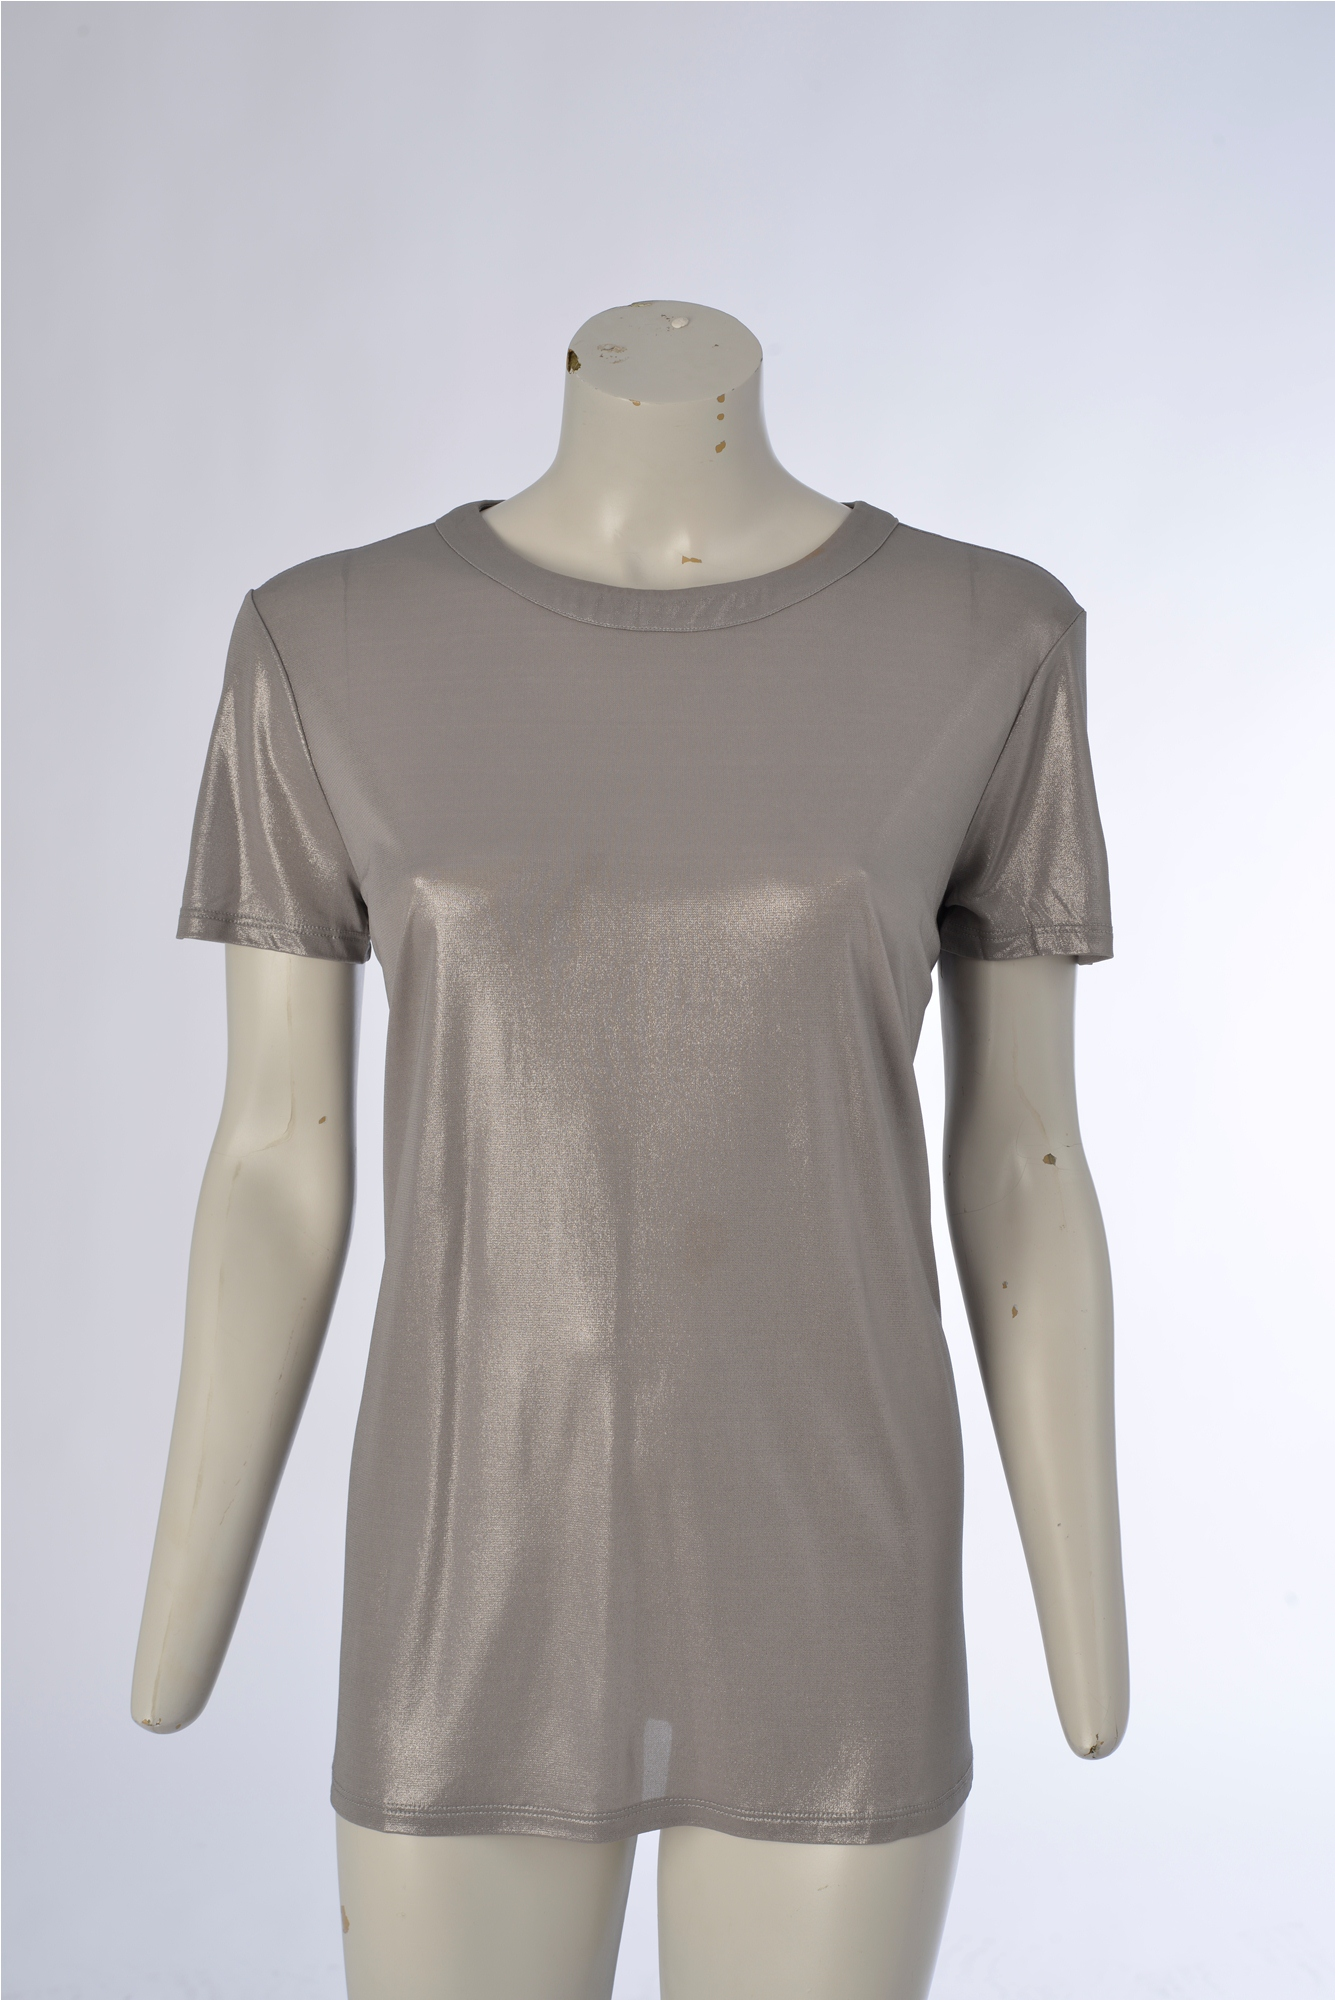 Slimming metallic buys